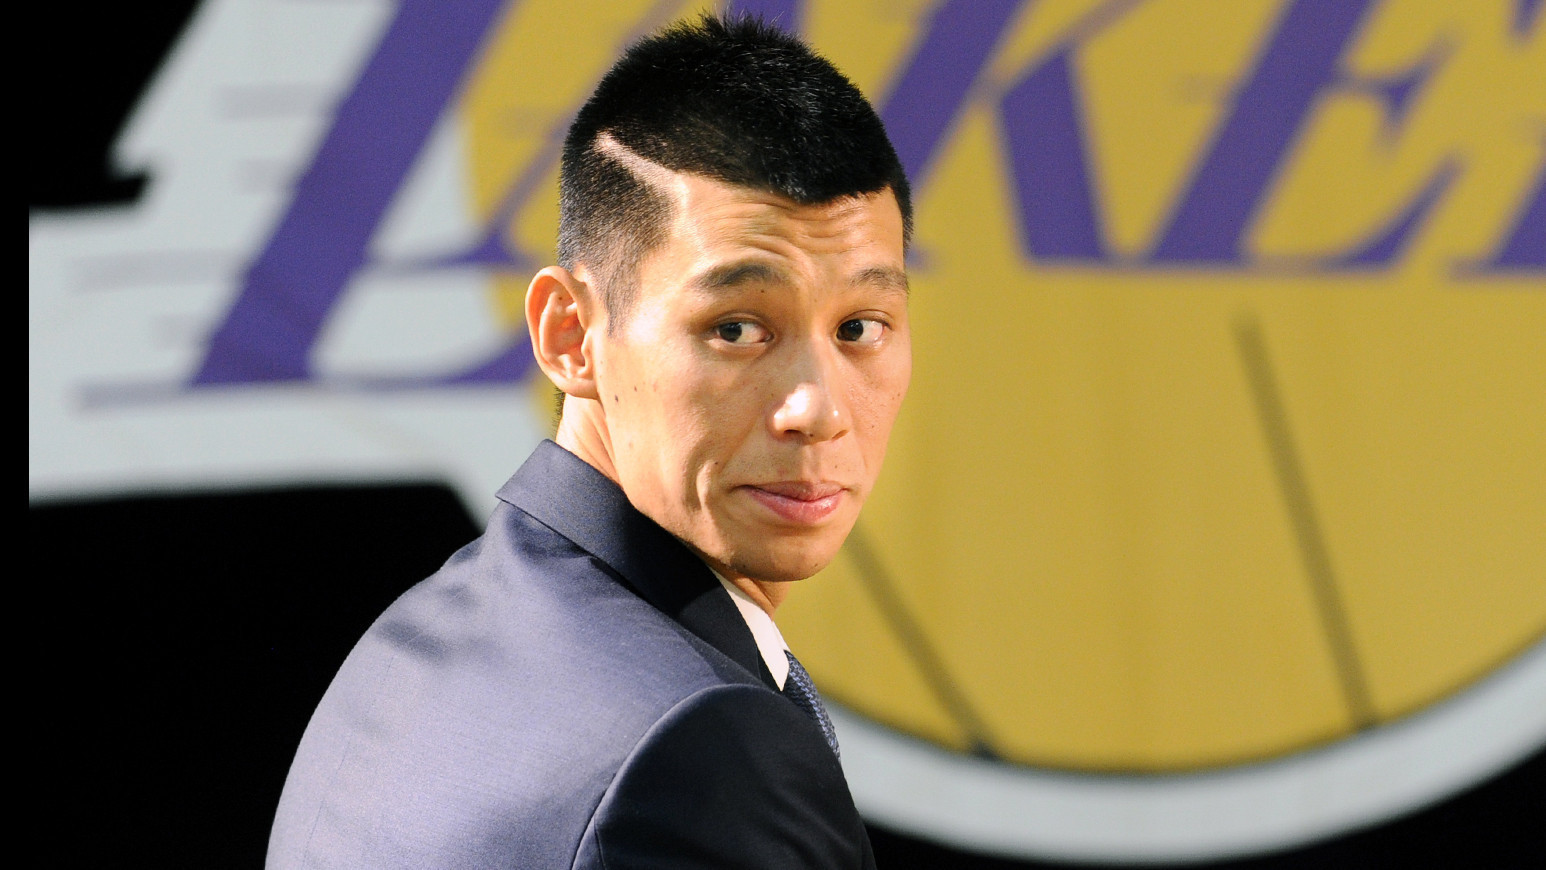 new concept 14f5b ca3e5 Jeremy Lin passed up big Linsanity payday - Chicago Tribune